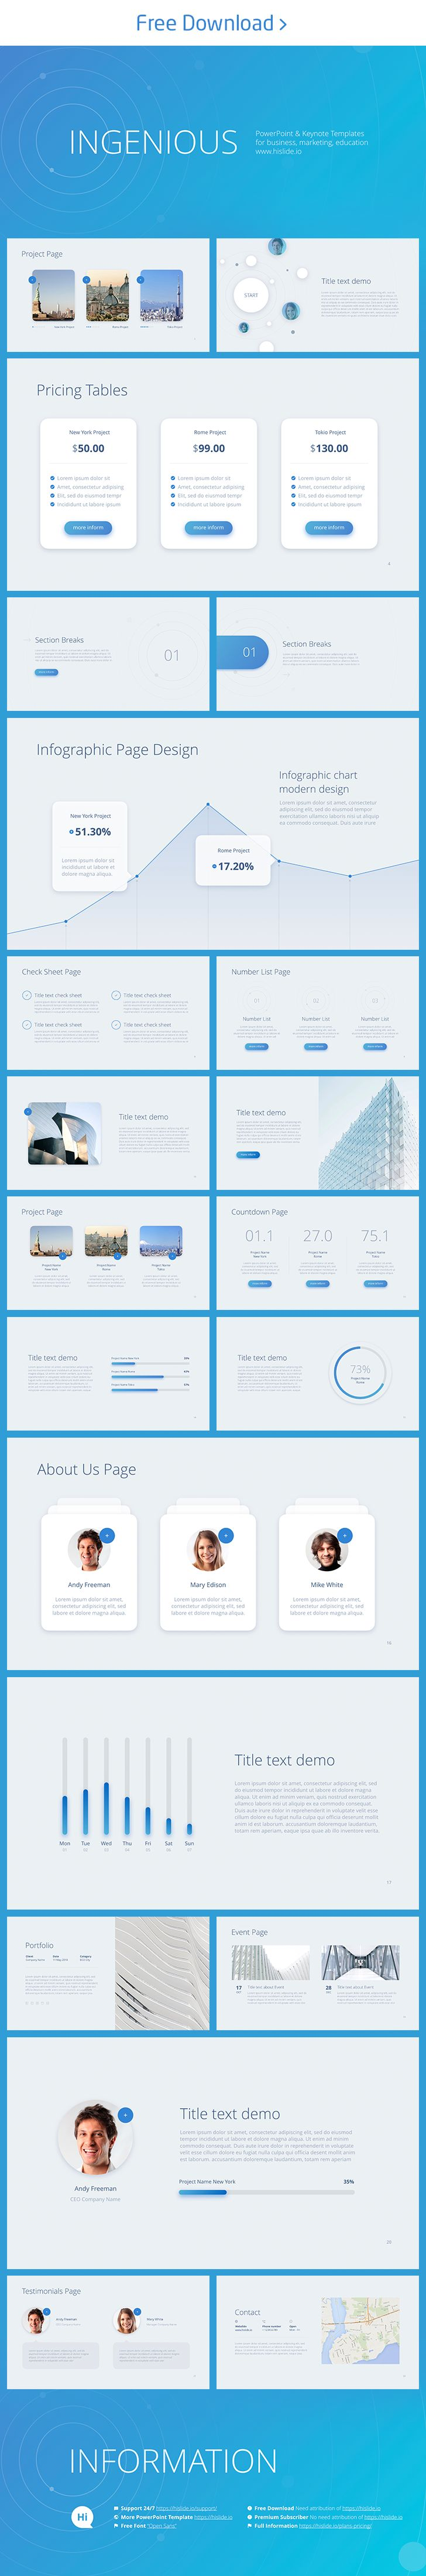 Best Free Keynote Template Images On   Free Keynote